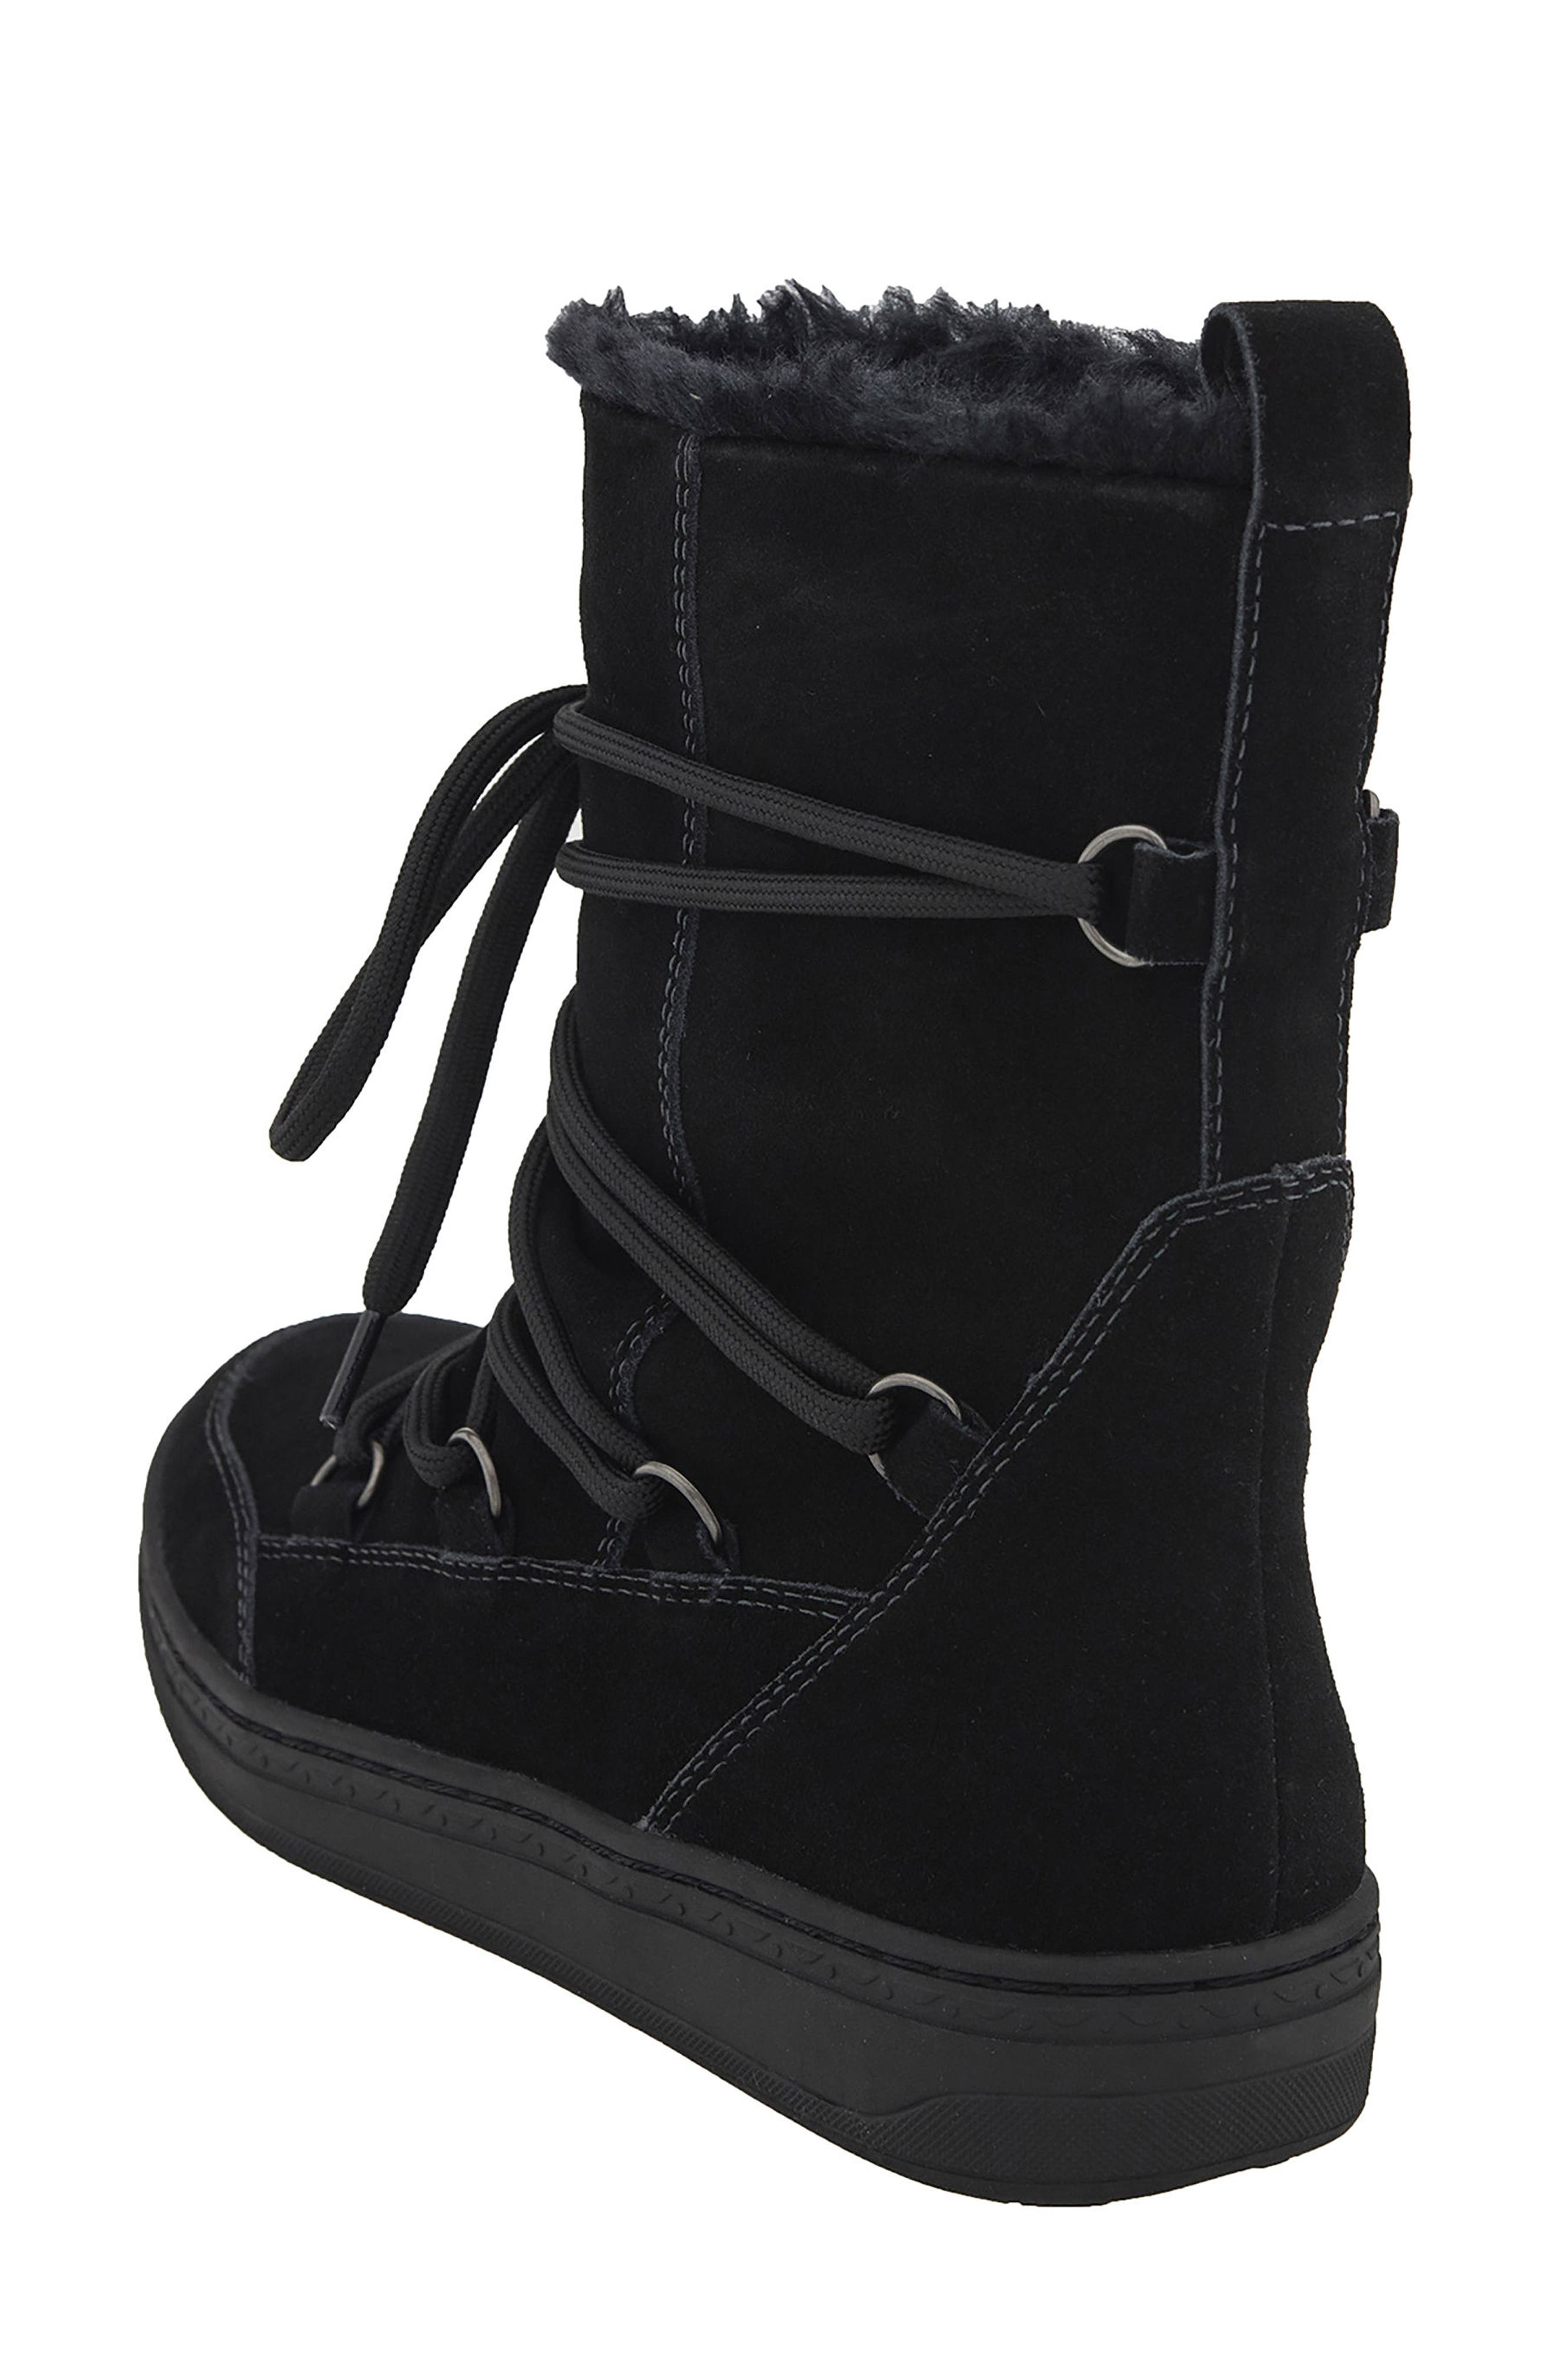 Zodiac Water Resistant Boot,                             Alternate thumbnail 2, color,                             BLACK SUEDE